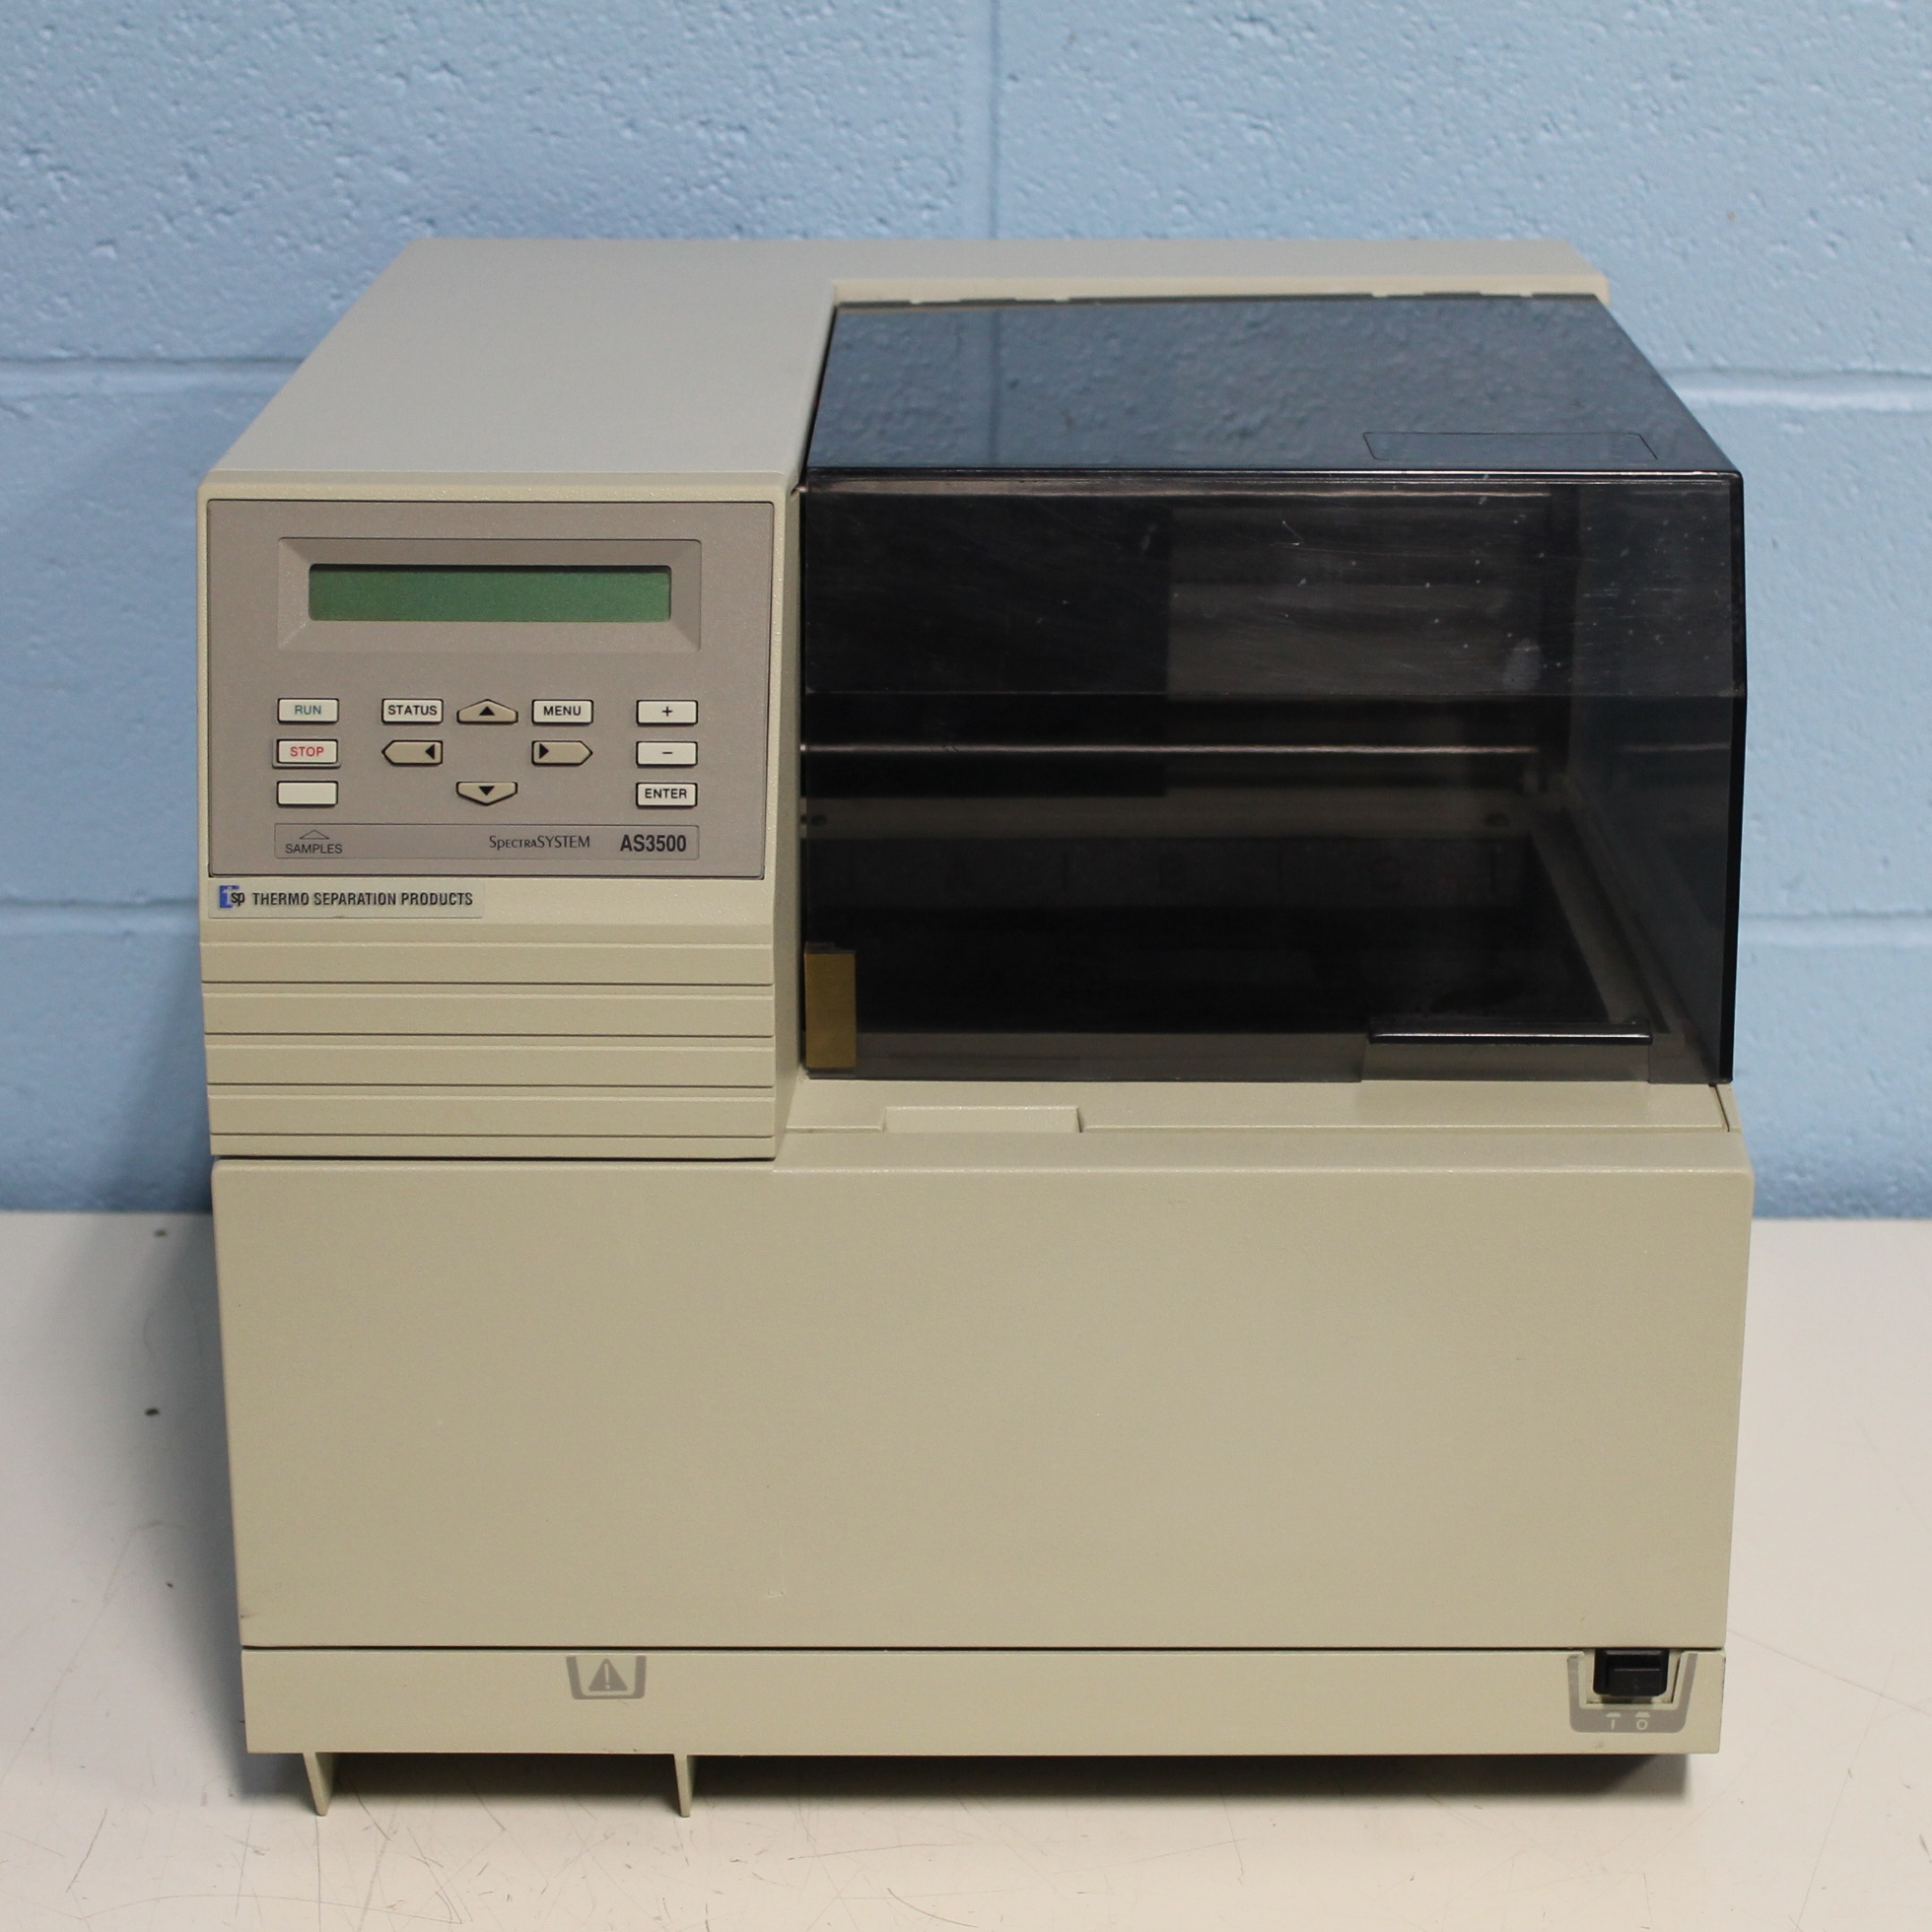 Thermo Separation Products Spectra System AS3500 Autosampler Image